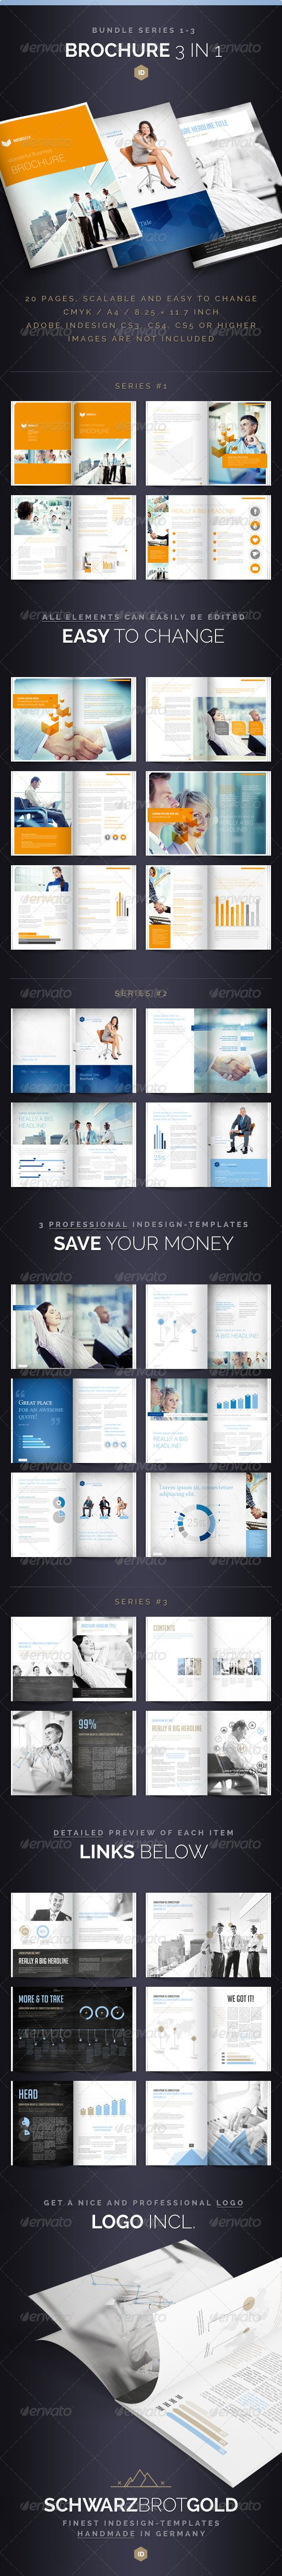 Brochure Bundle Pages Series Pinterest Corporate Brochure - 1 3 page flyer template